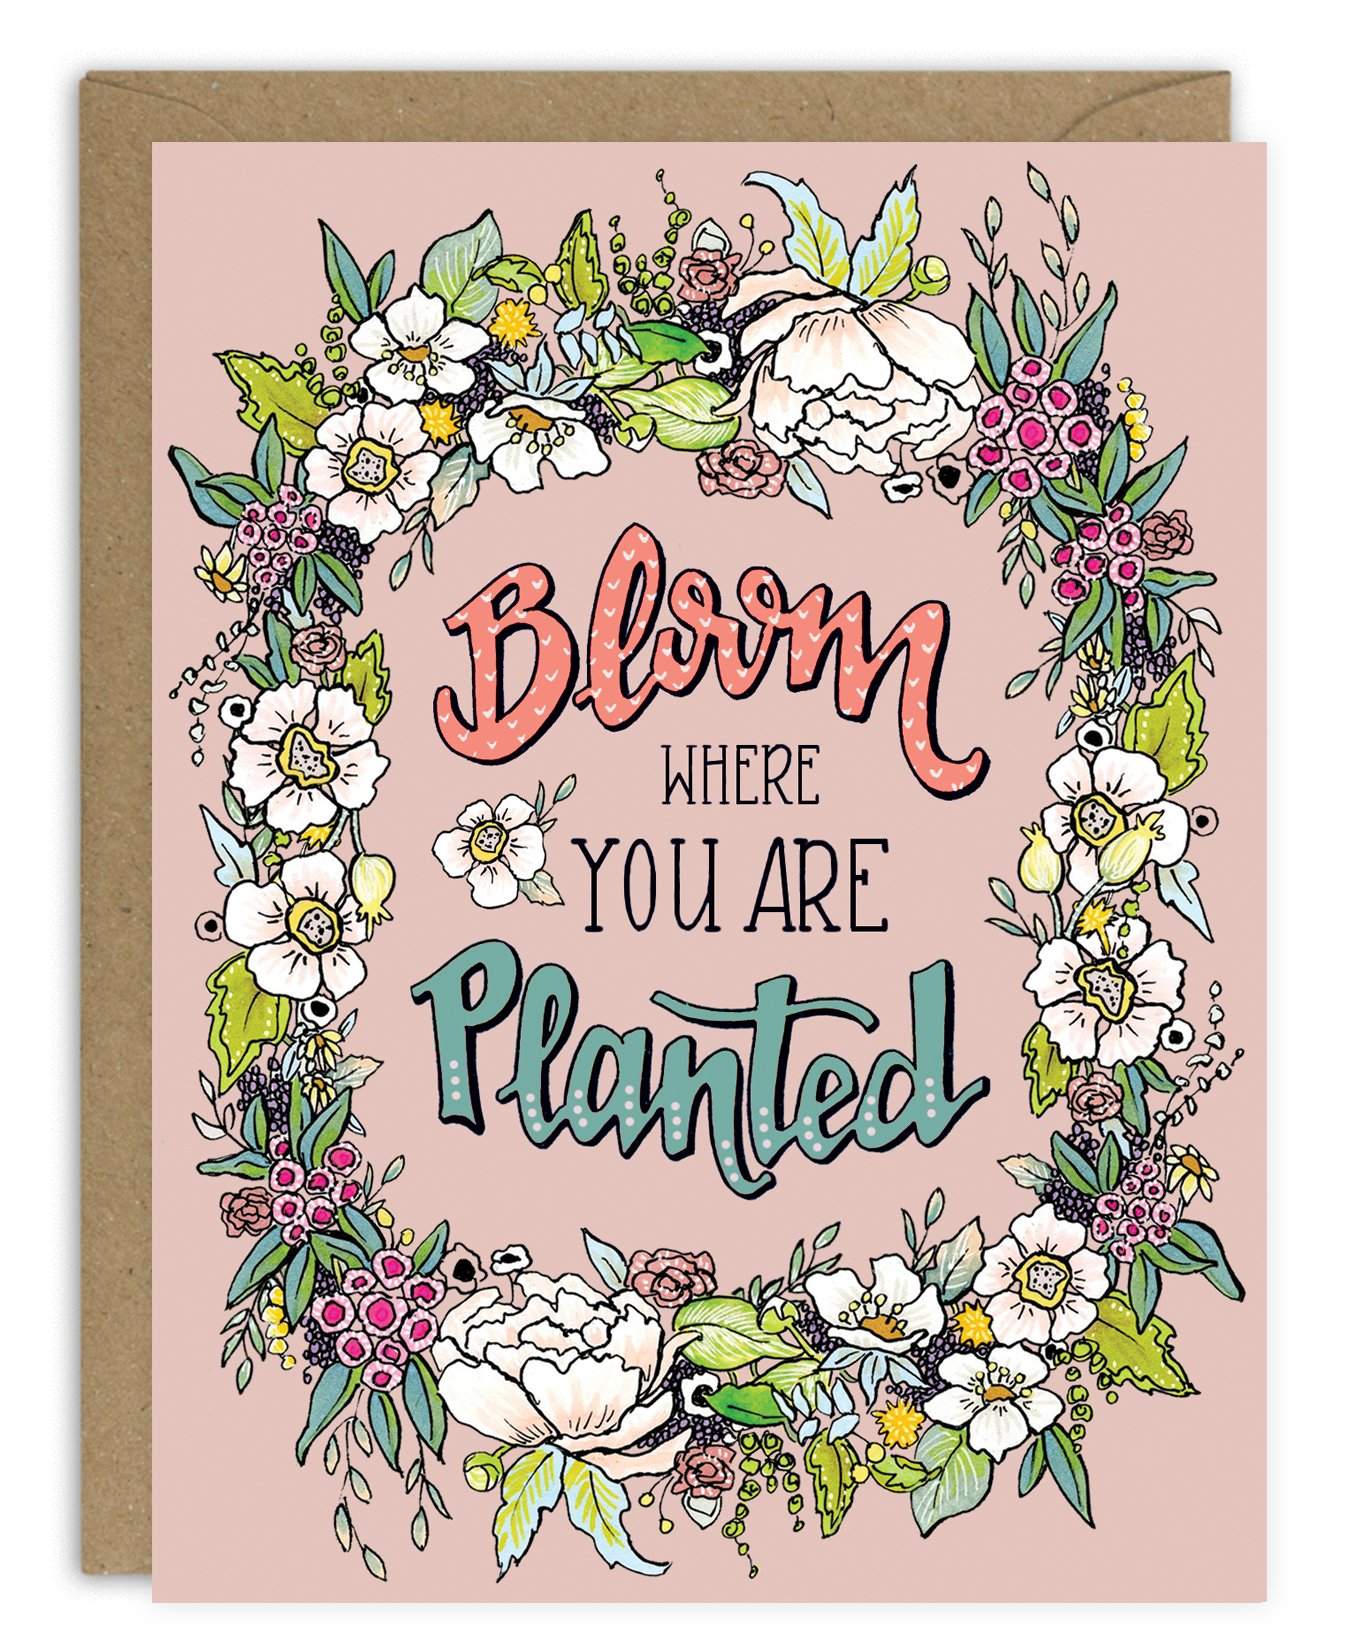 Clipart of bloom where you are planted royalty free stock Bloom Where You are Planted Card royalty free stock